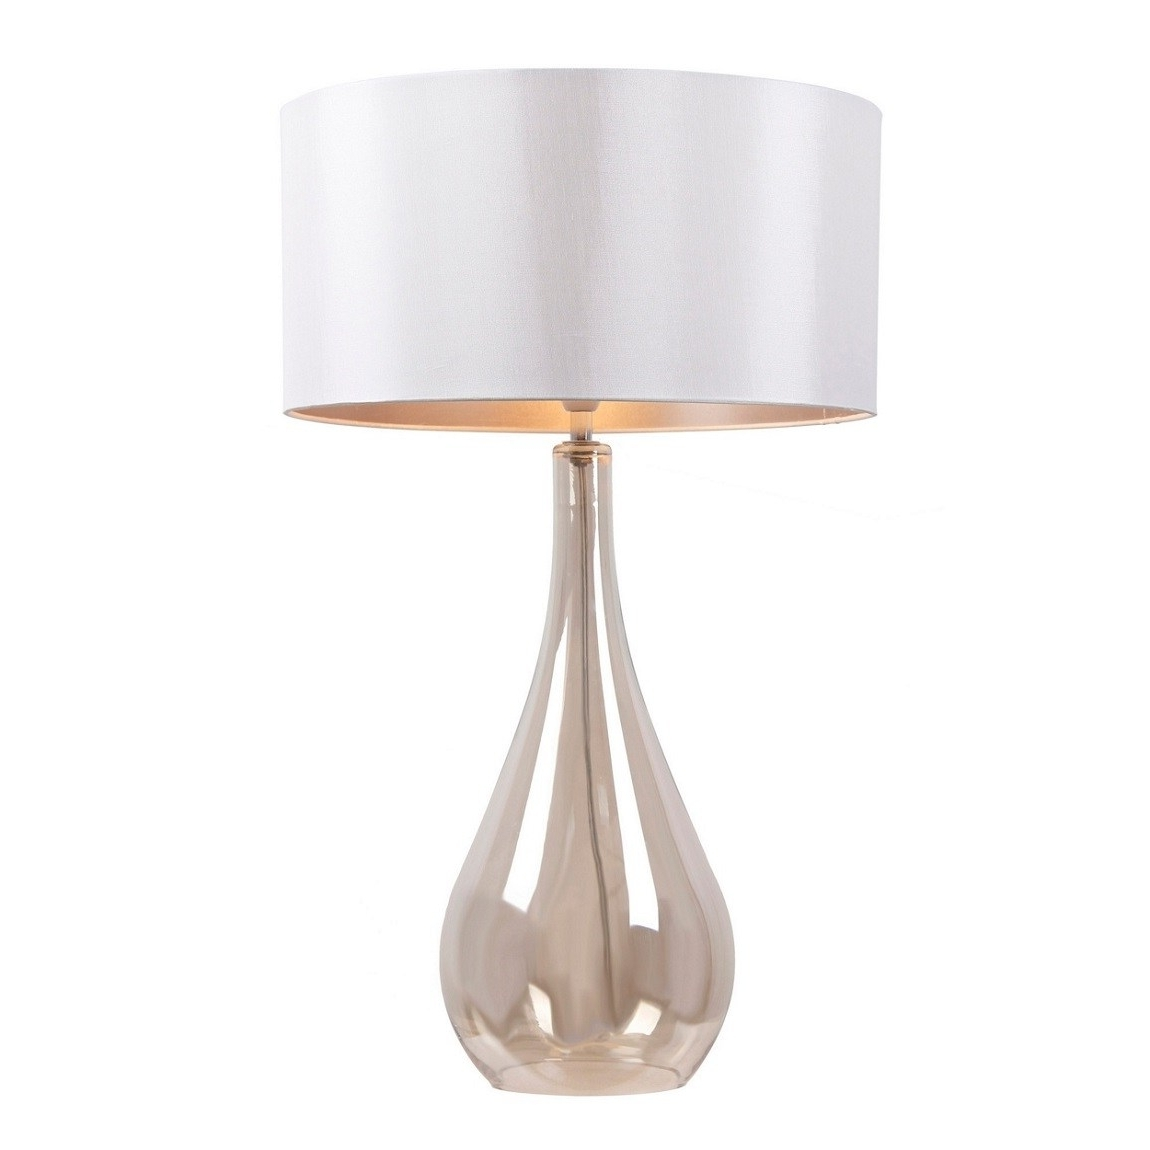 Debenhams Table Lamps For Living Room Throughout Fashionable Irresistible Bedroom Uk Tall Table Lamps Canada Sentinel Debenhams (View 7 of 20)